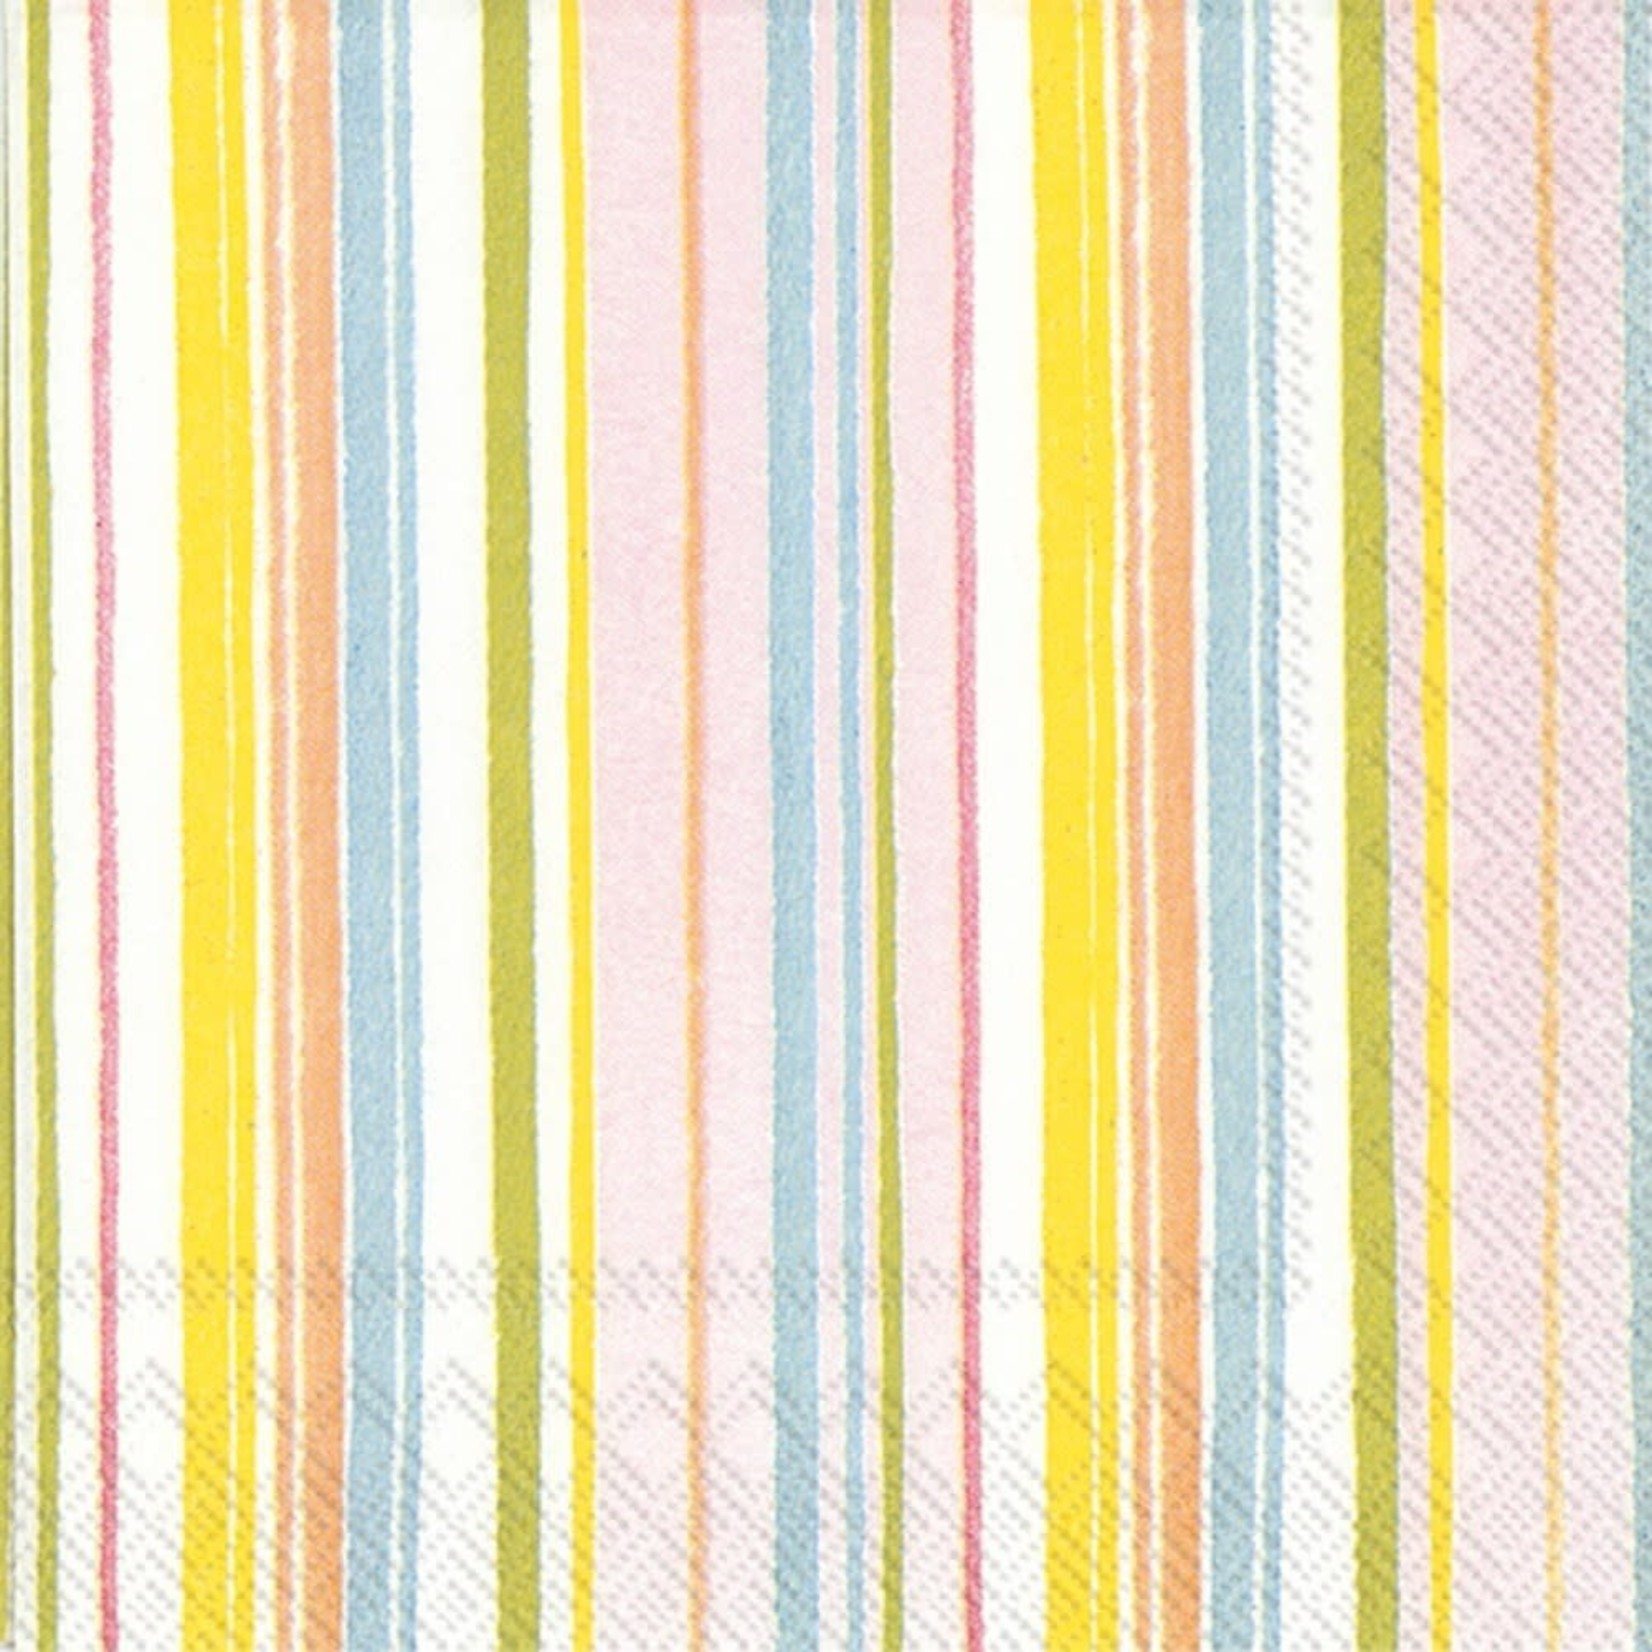 Paper Napkins Spring Stripes Cocktail